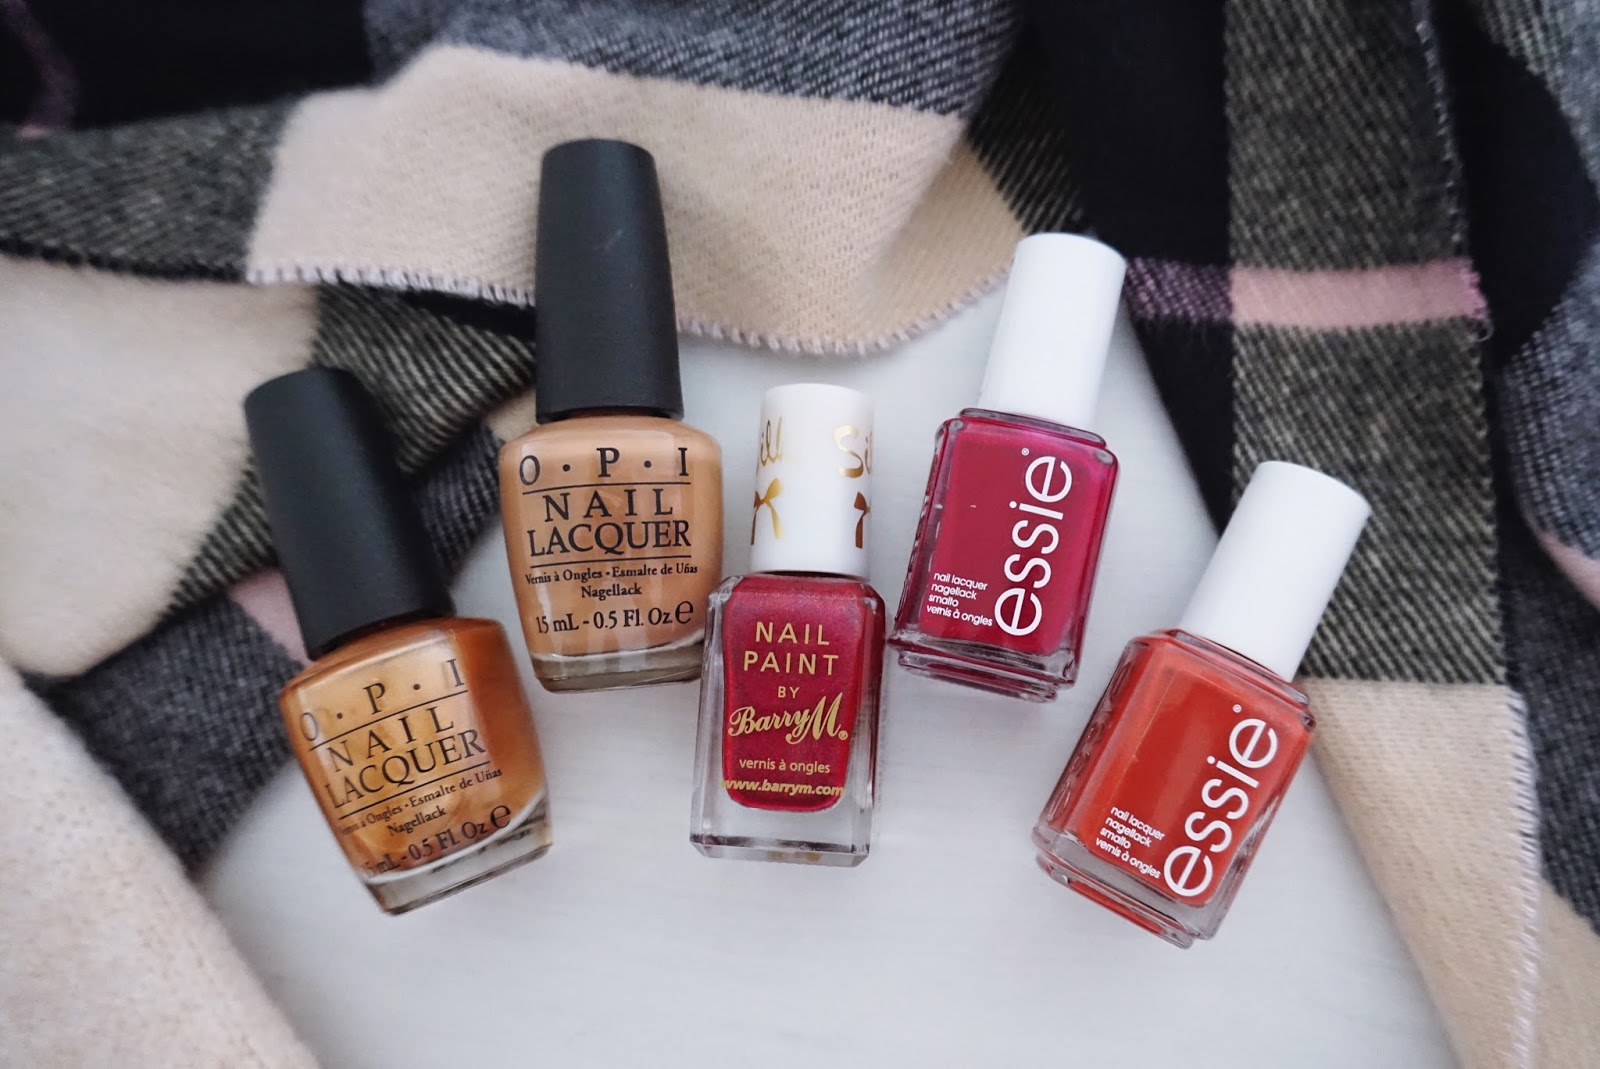 Autumn Nail Polish shades